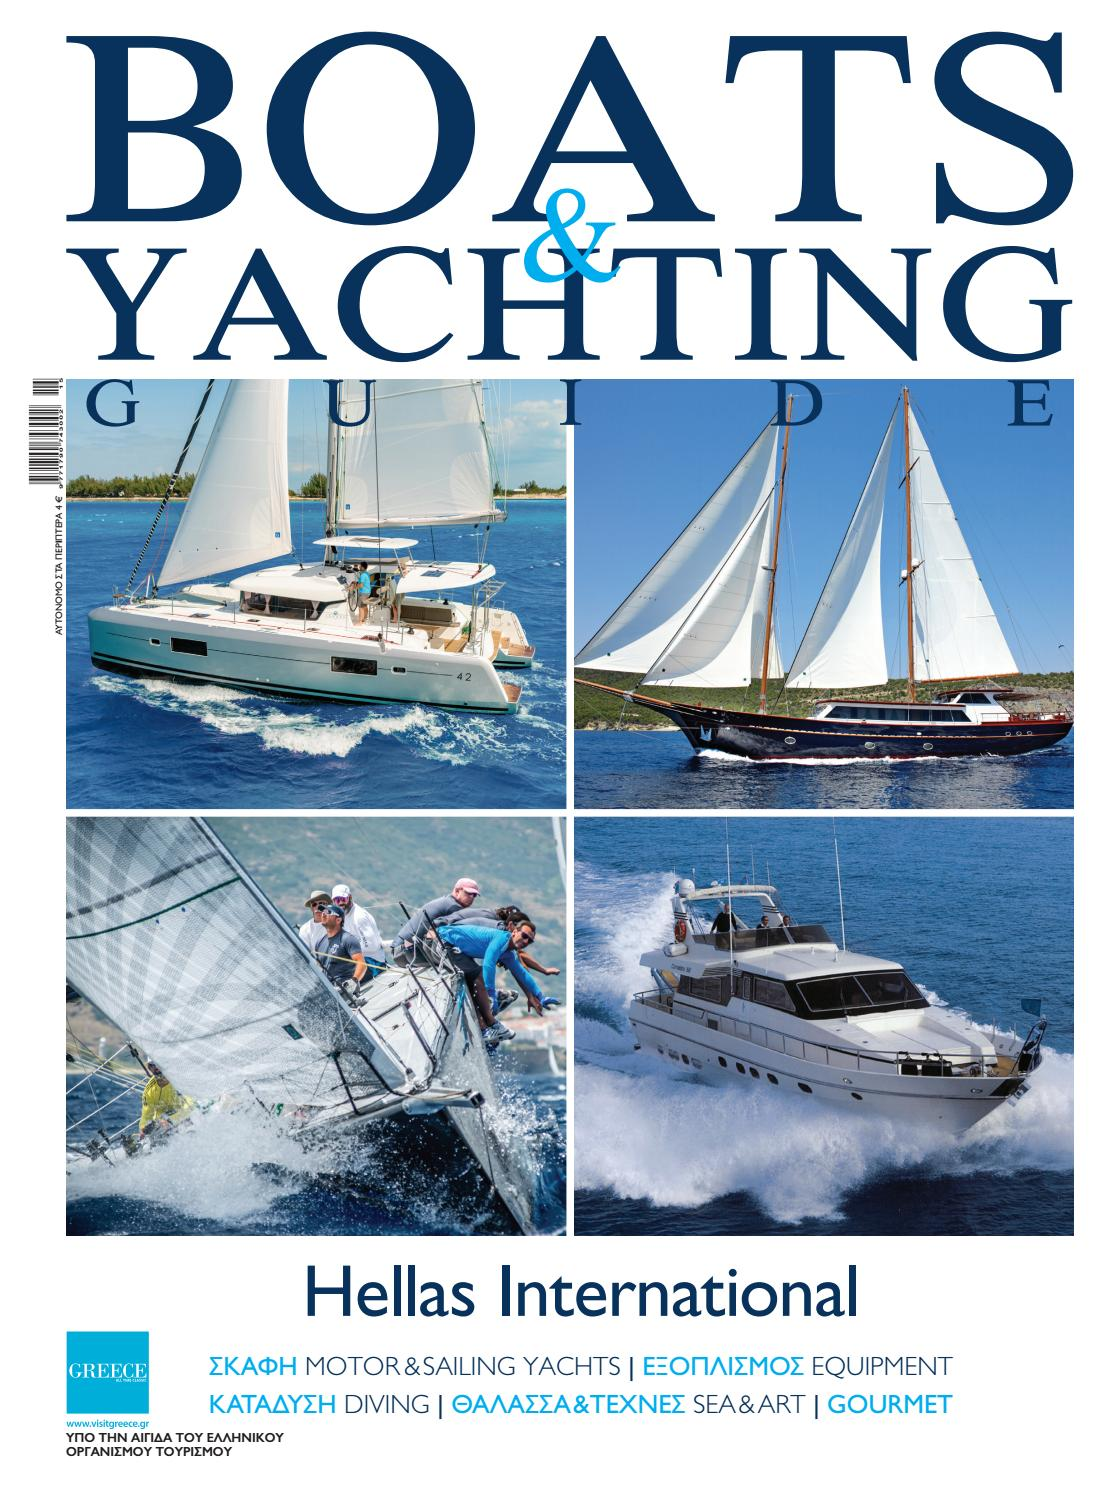 2f7527a7829 Boats & Yachting 2017 by TCT MEDIA - issuu